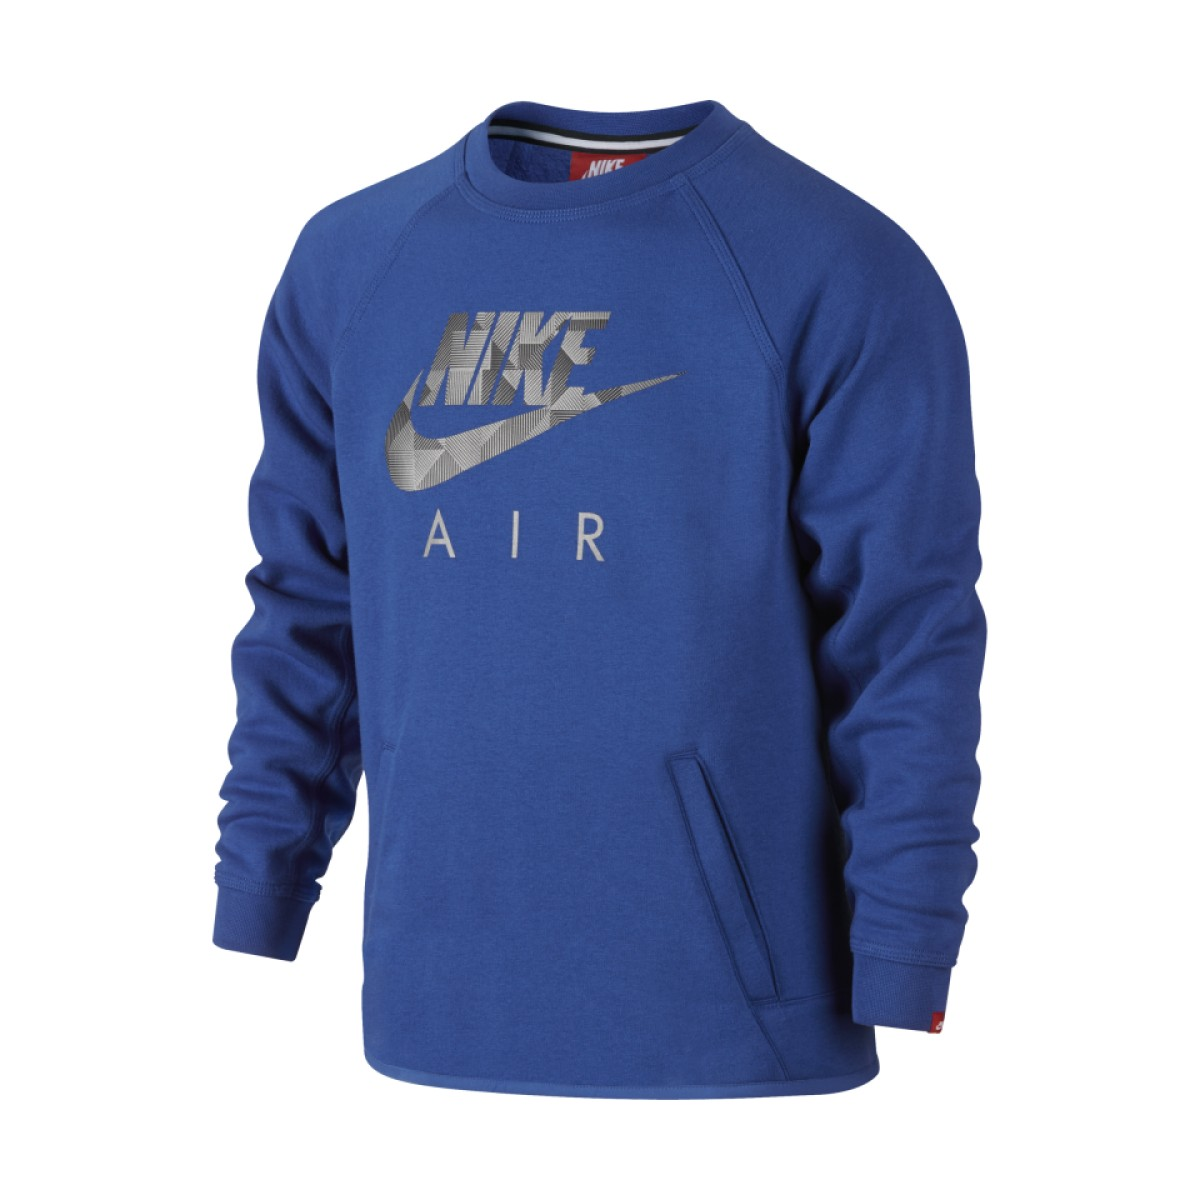 SWEAT NIKE JUNIOR AIR RAS DU COU NIKE Junior Vêtements